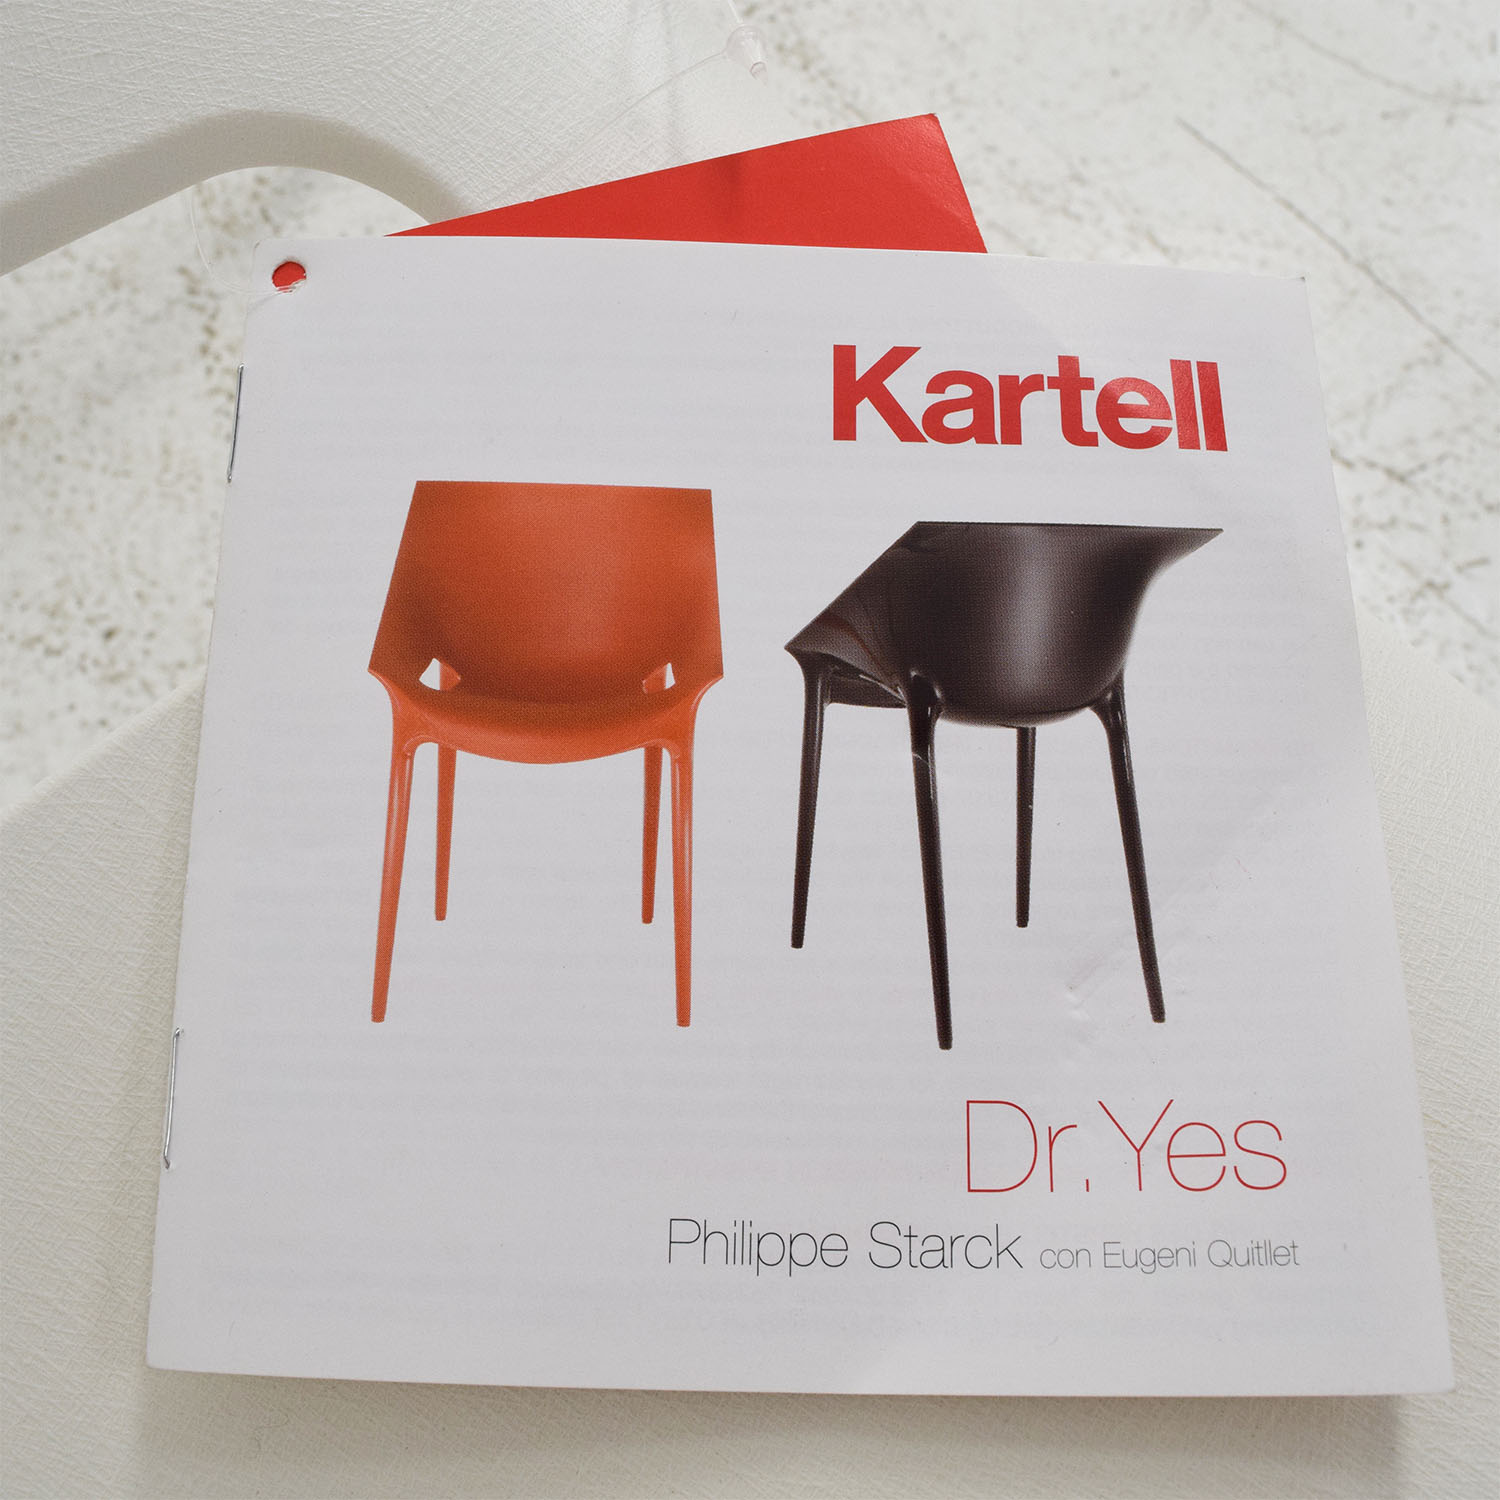 off  kartell kartell dr yes grey chairs  chairs -  kartell kartell dr yes grey chairs nyc